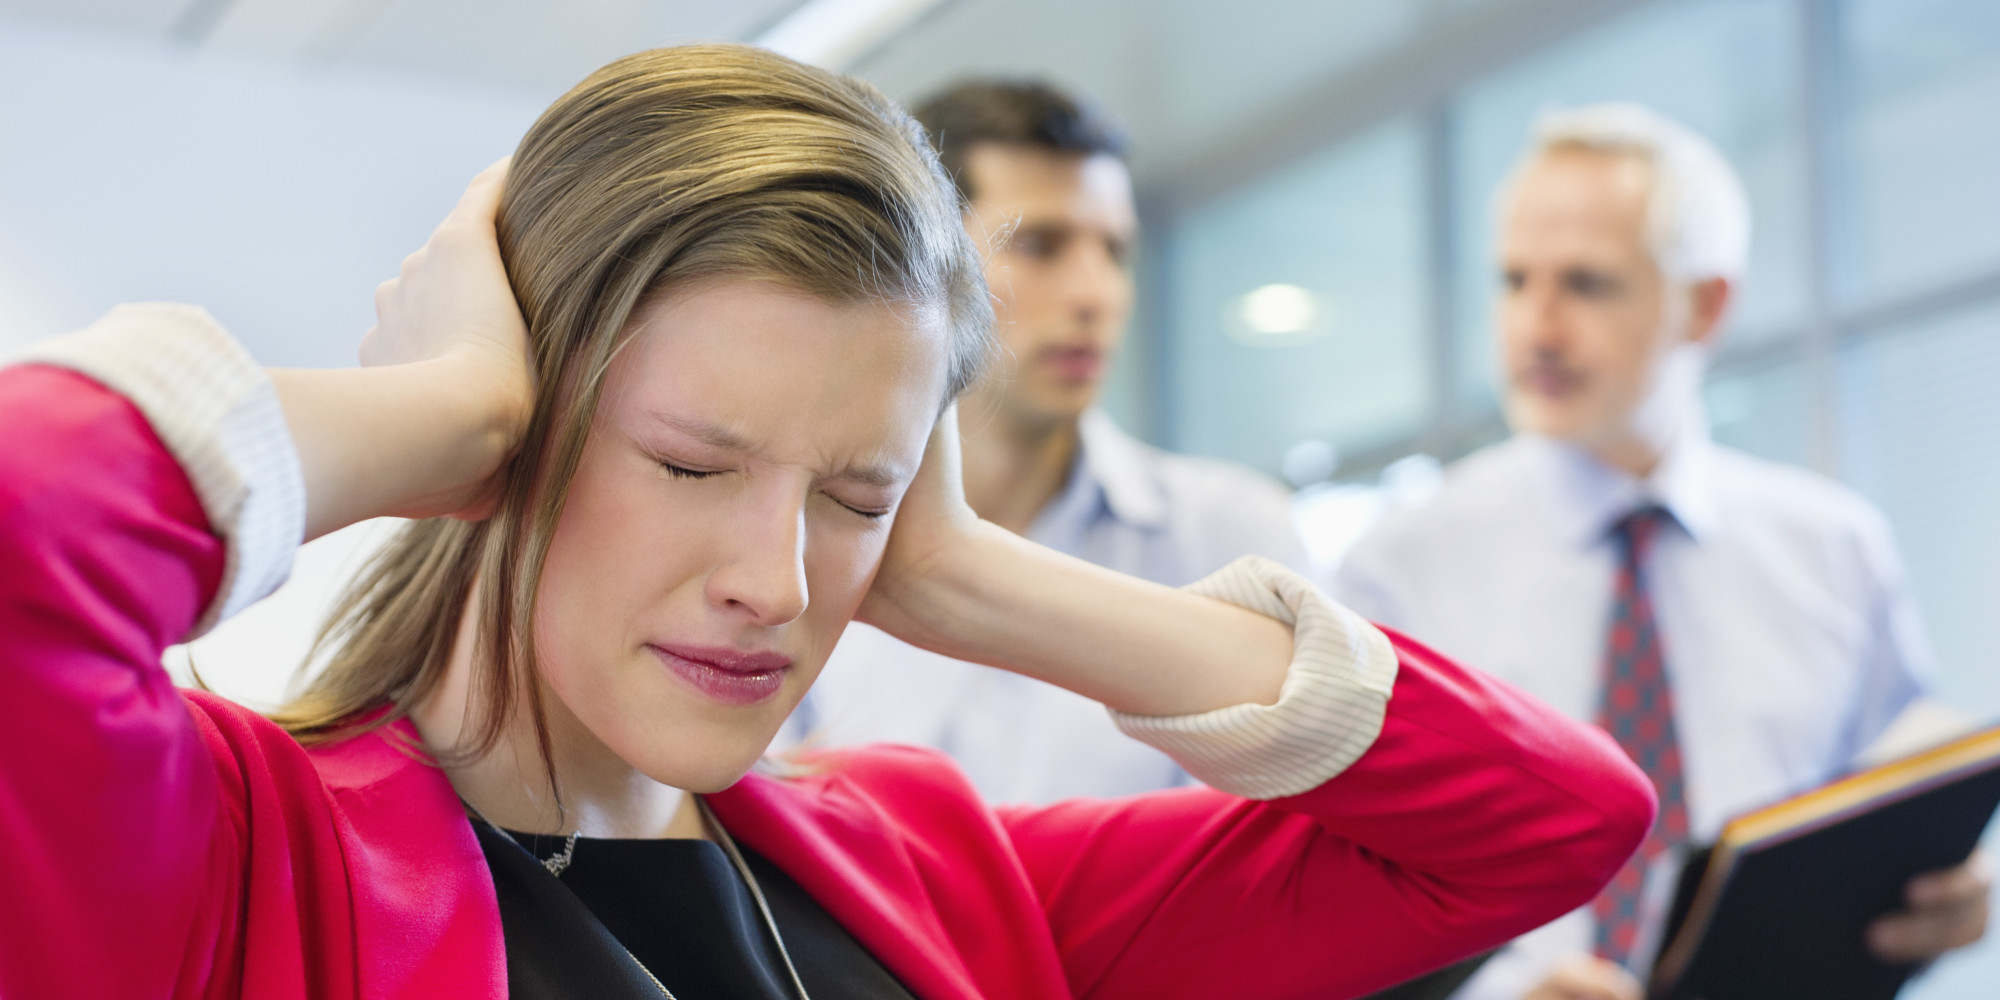 how to cope annoying coworkers who make your day miserable how to cope annoying coworkers who make your day miserable video the huffington post